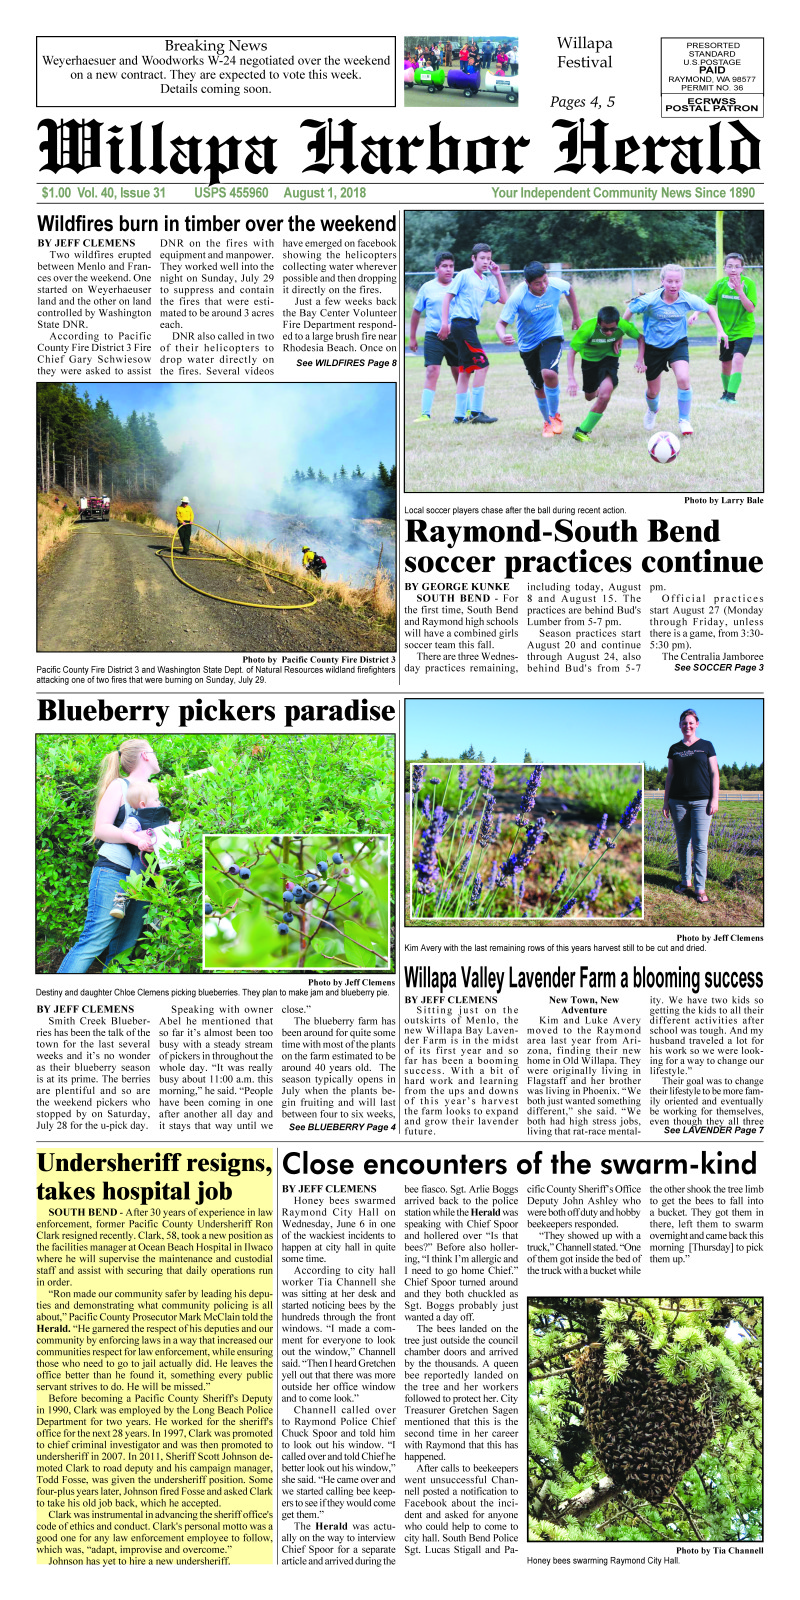 August 1, 2018 Willapa Harbor Herald